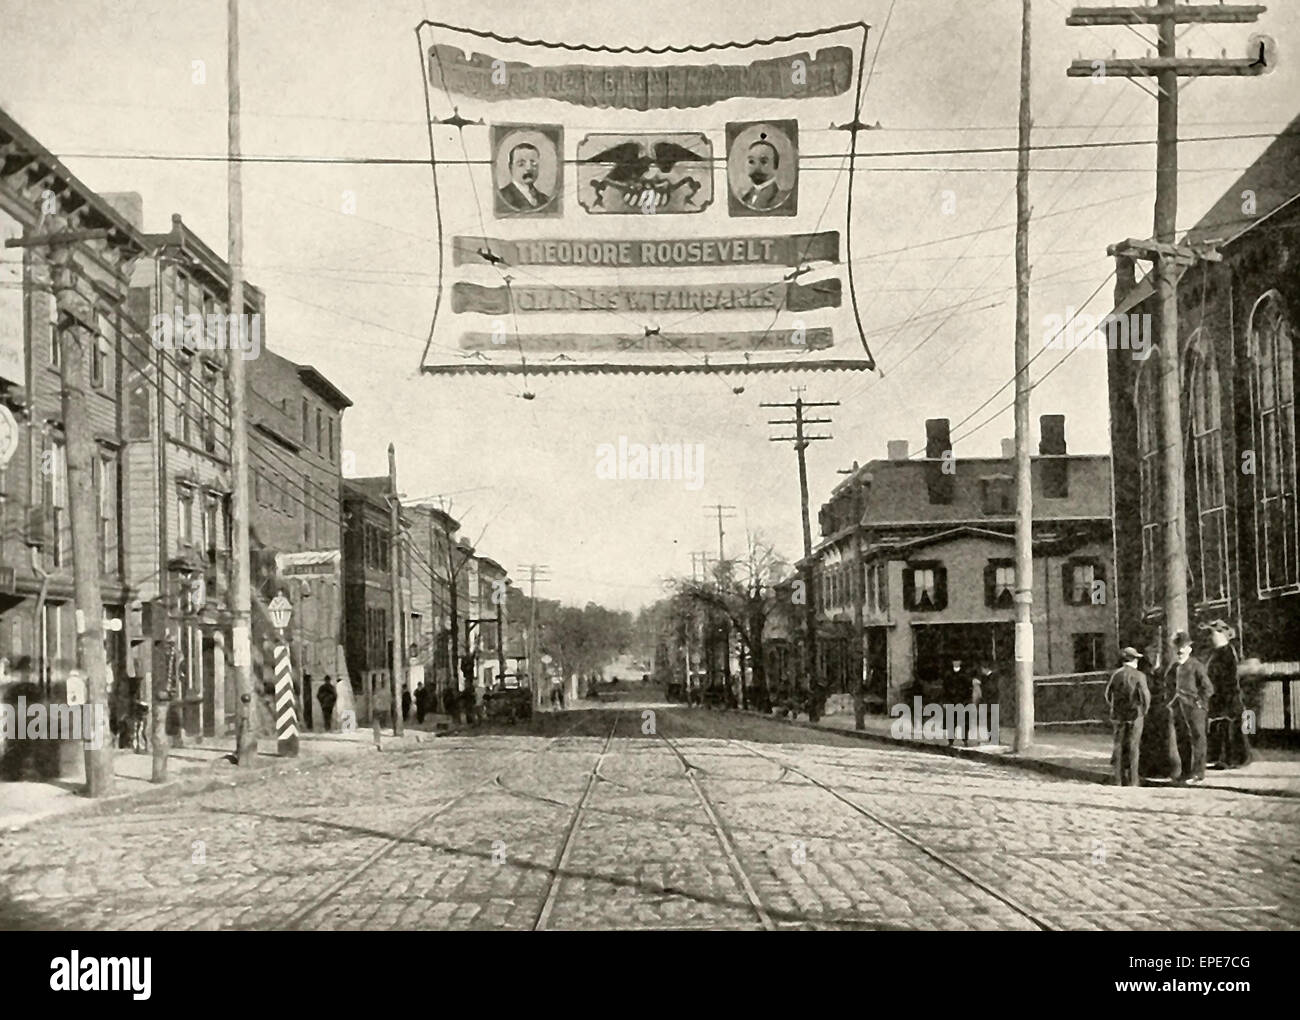 Albany Street, From George Street, looking North. New Brunswick, NJ, circa 1904. Theodore Roosevelt and Charles - Stock Image